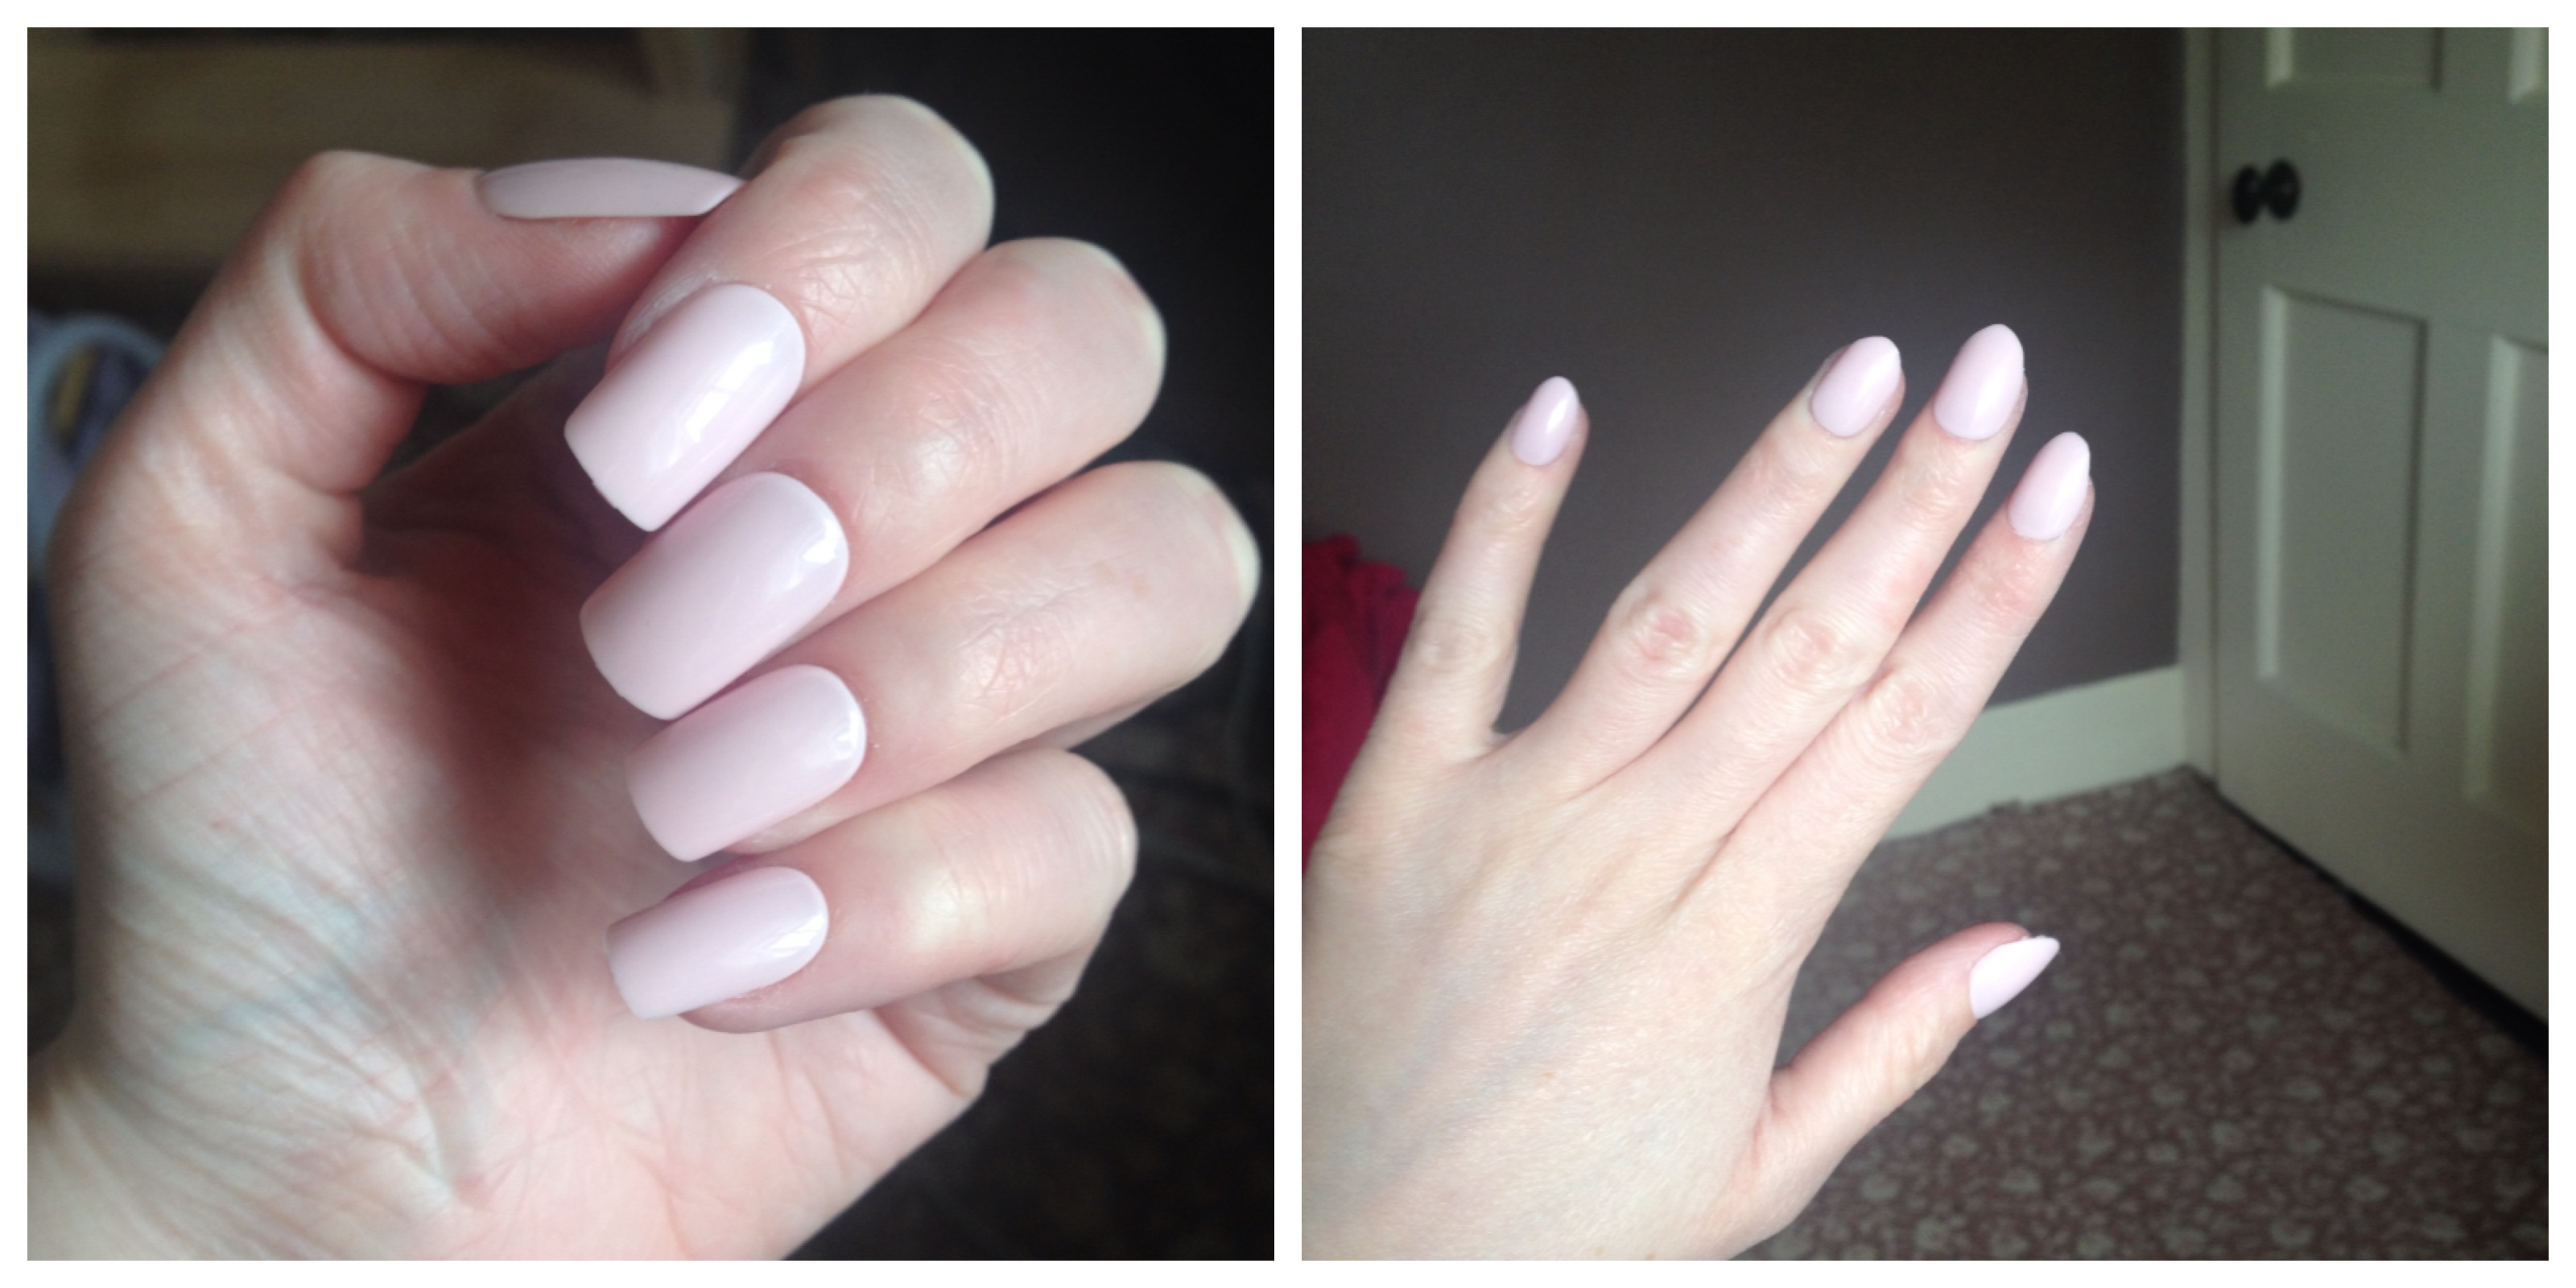 Impress Stick-on Nails: Latest Range Not So Impressive on Smaller ...